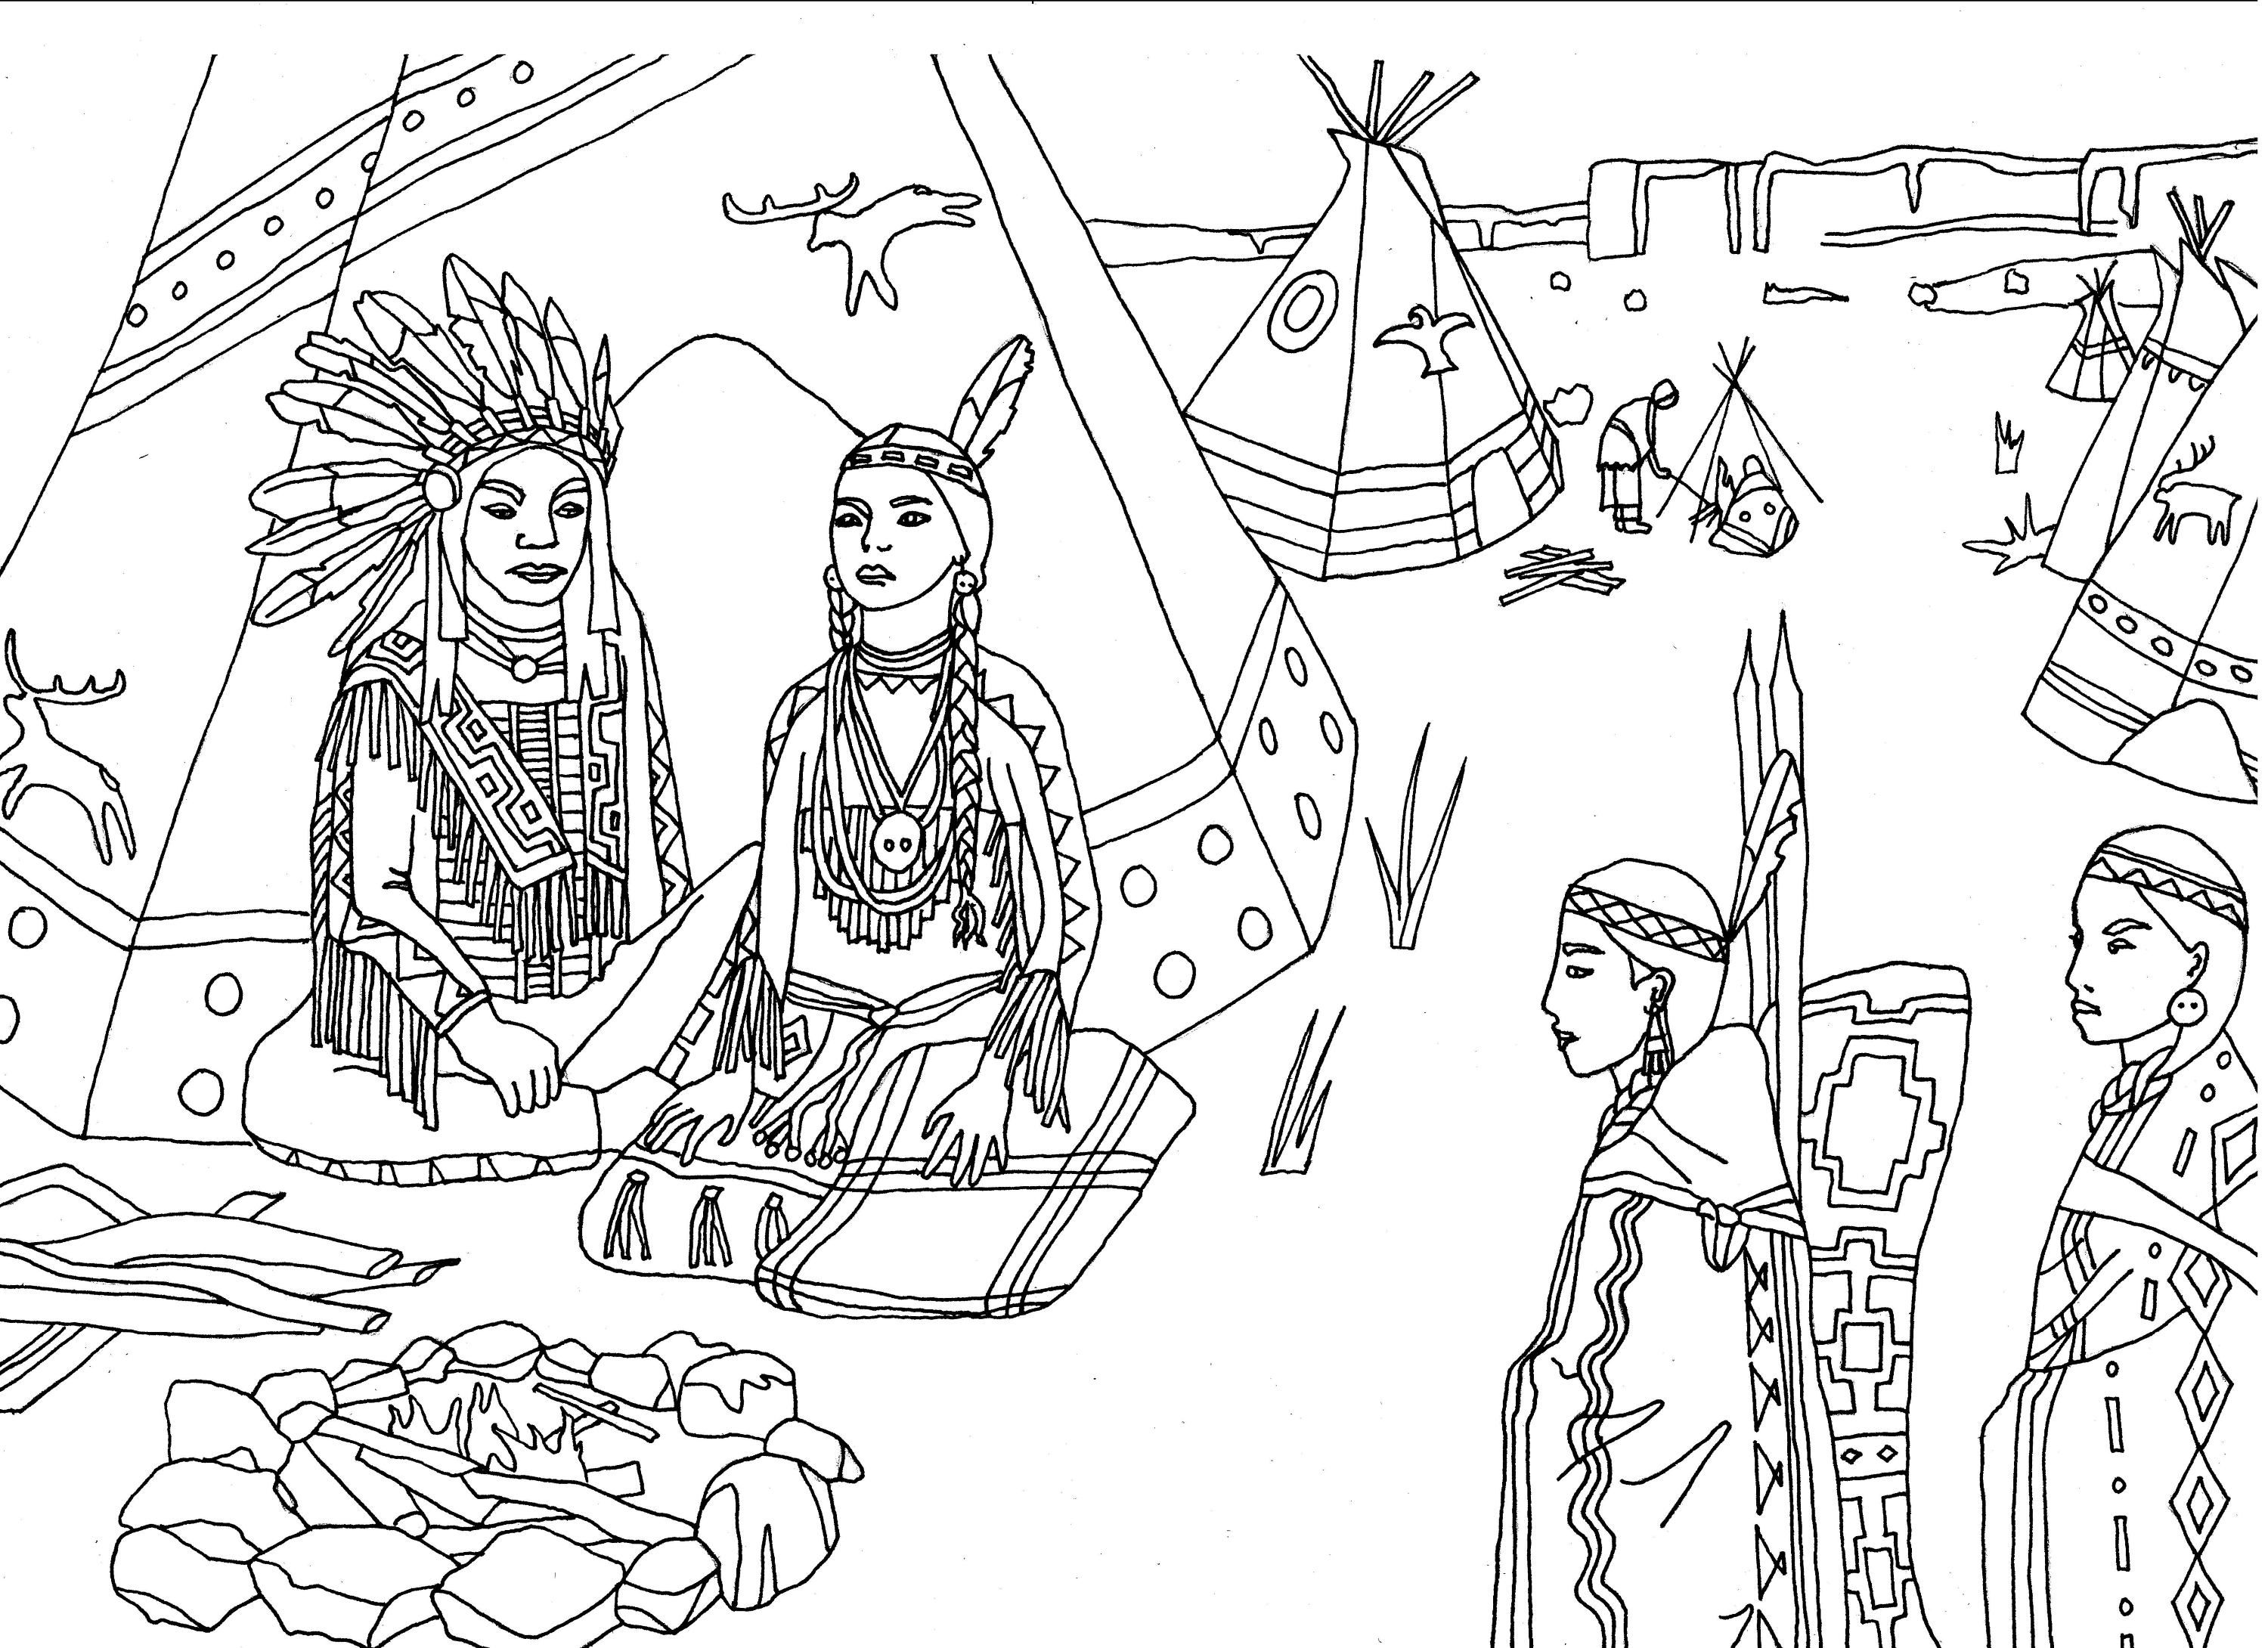 Uncategorized Native American Indian Coloring Pages free coloring page adult native americans indians sat front